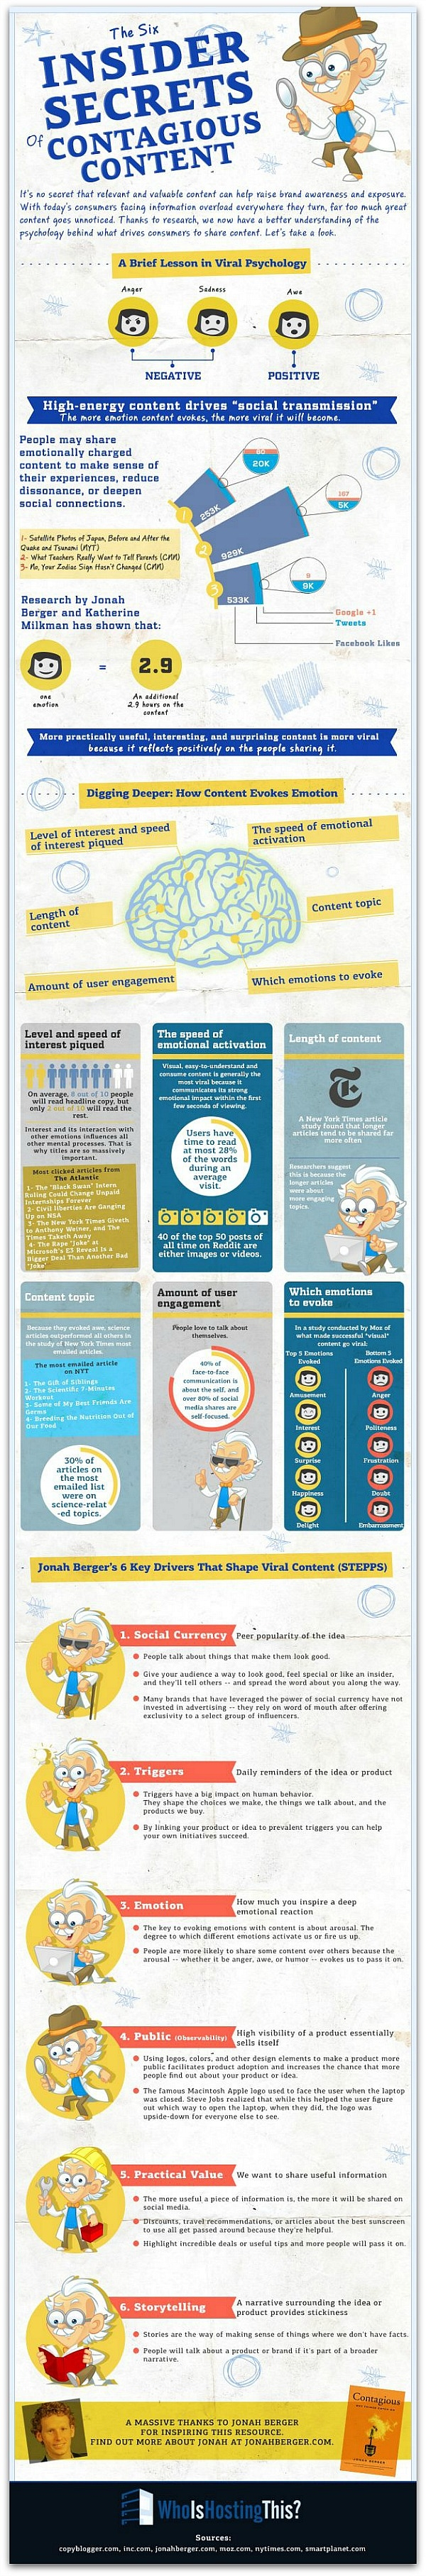 How_to_Create_Viral_Content_Psychology_Infographic